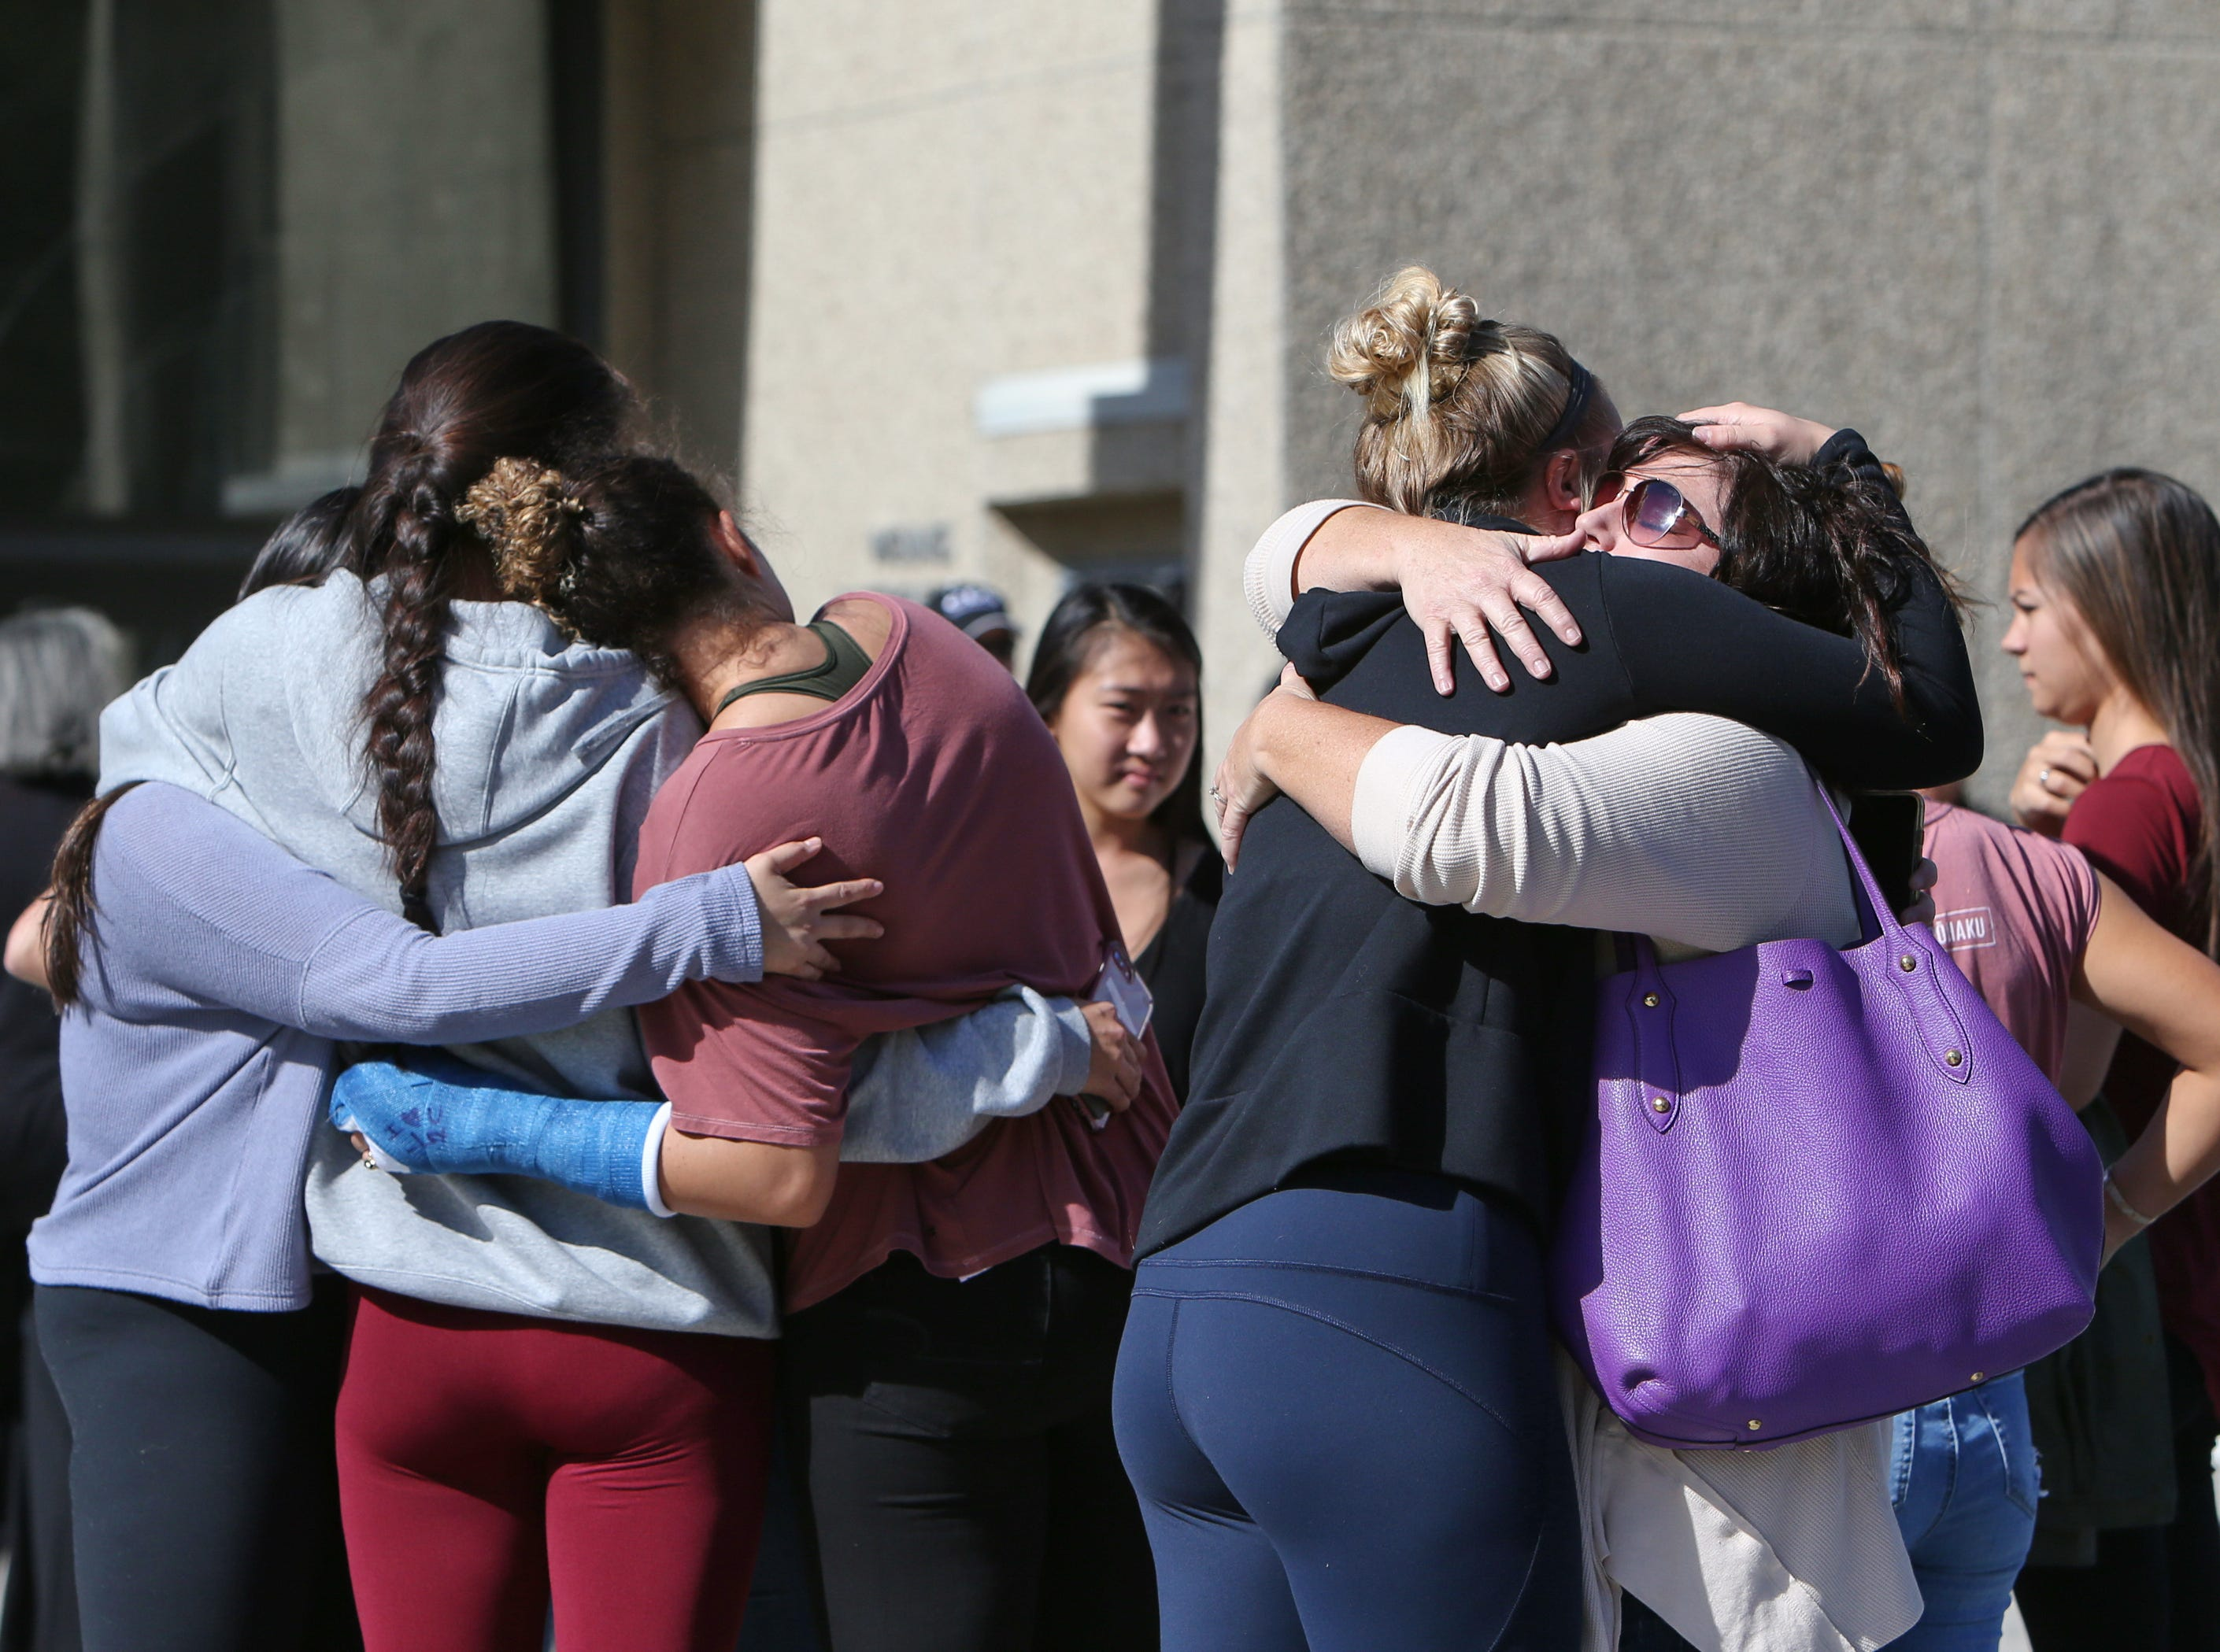 Cal Lutheran students, faculty and community members console each other after the service Thursday for the victims of the Borderline Bar Borderline Bar & Grill shooting.